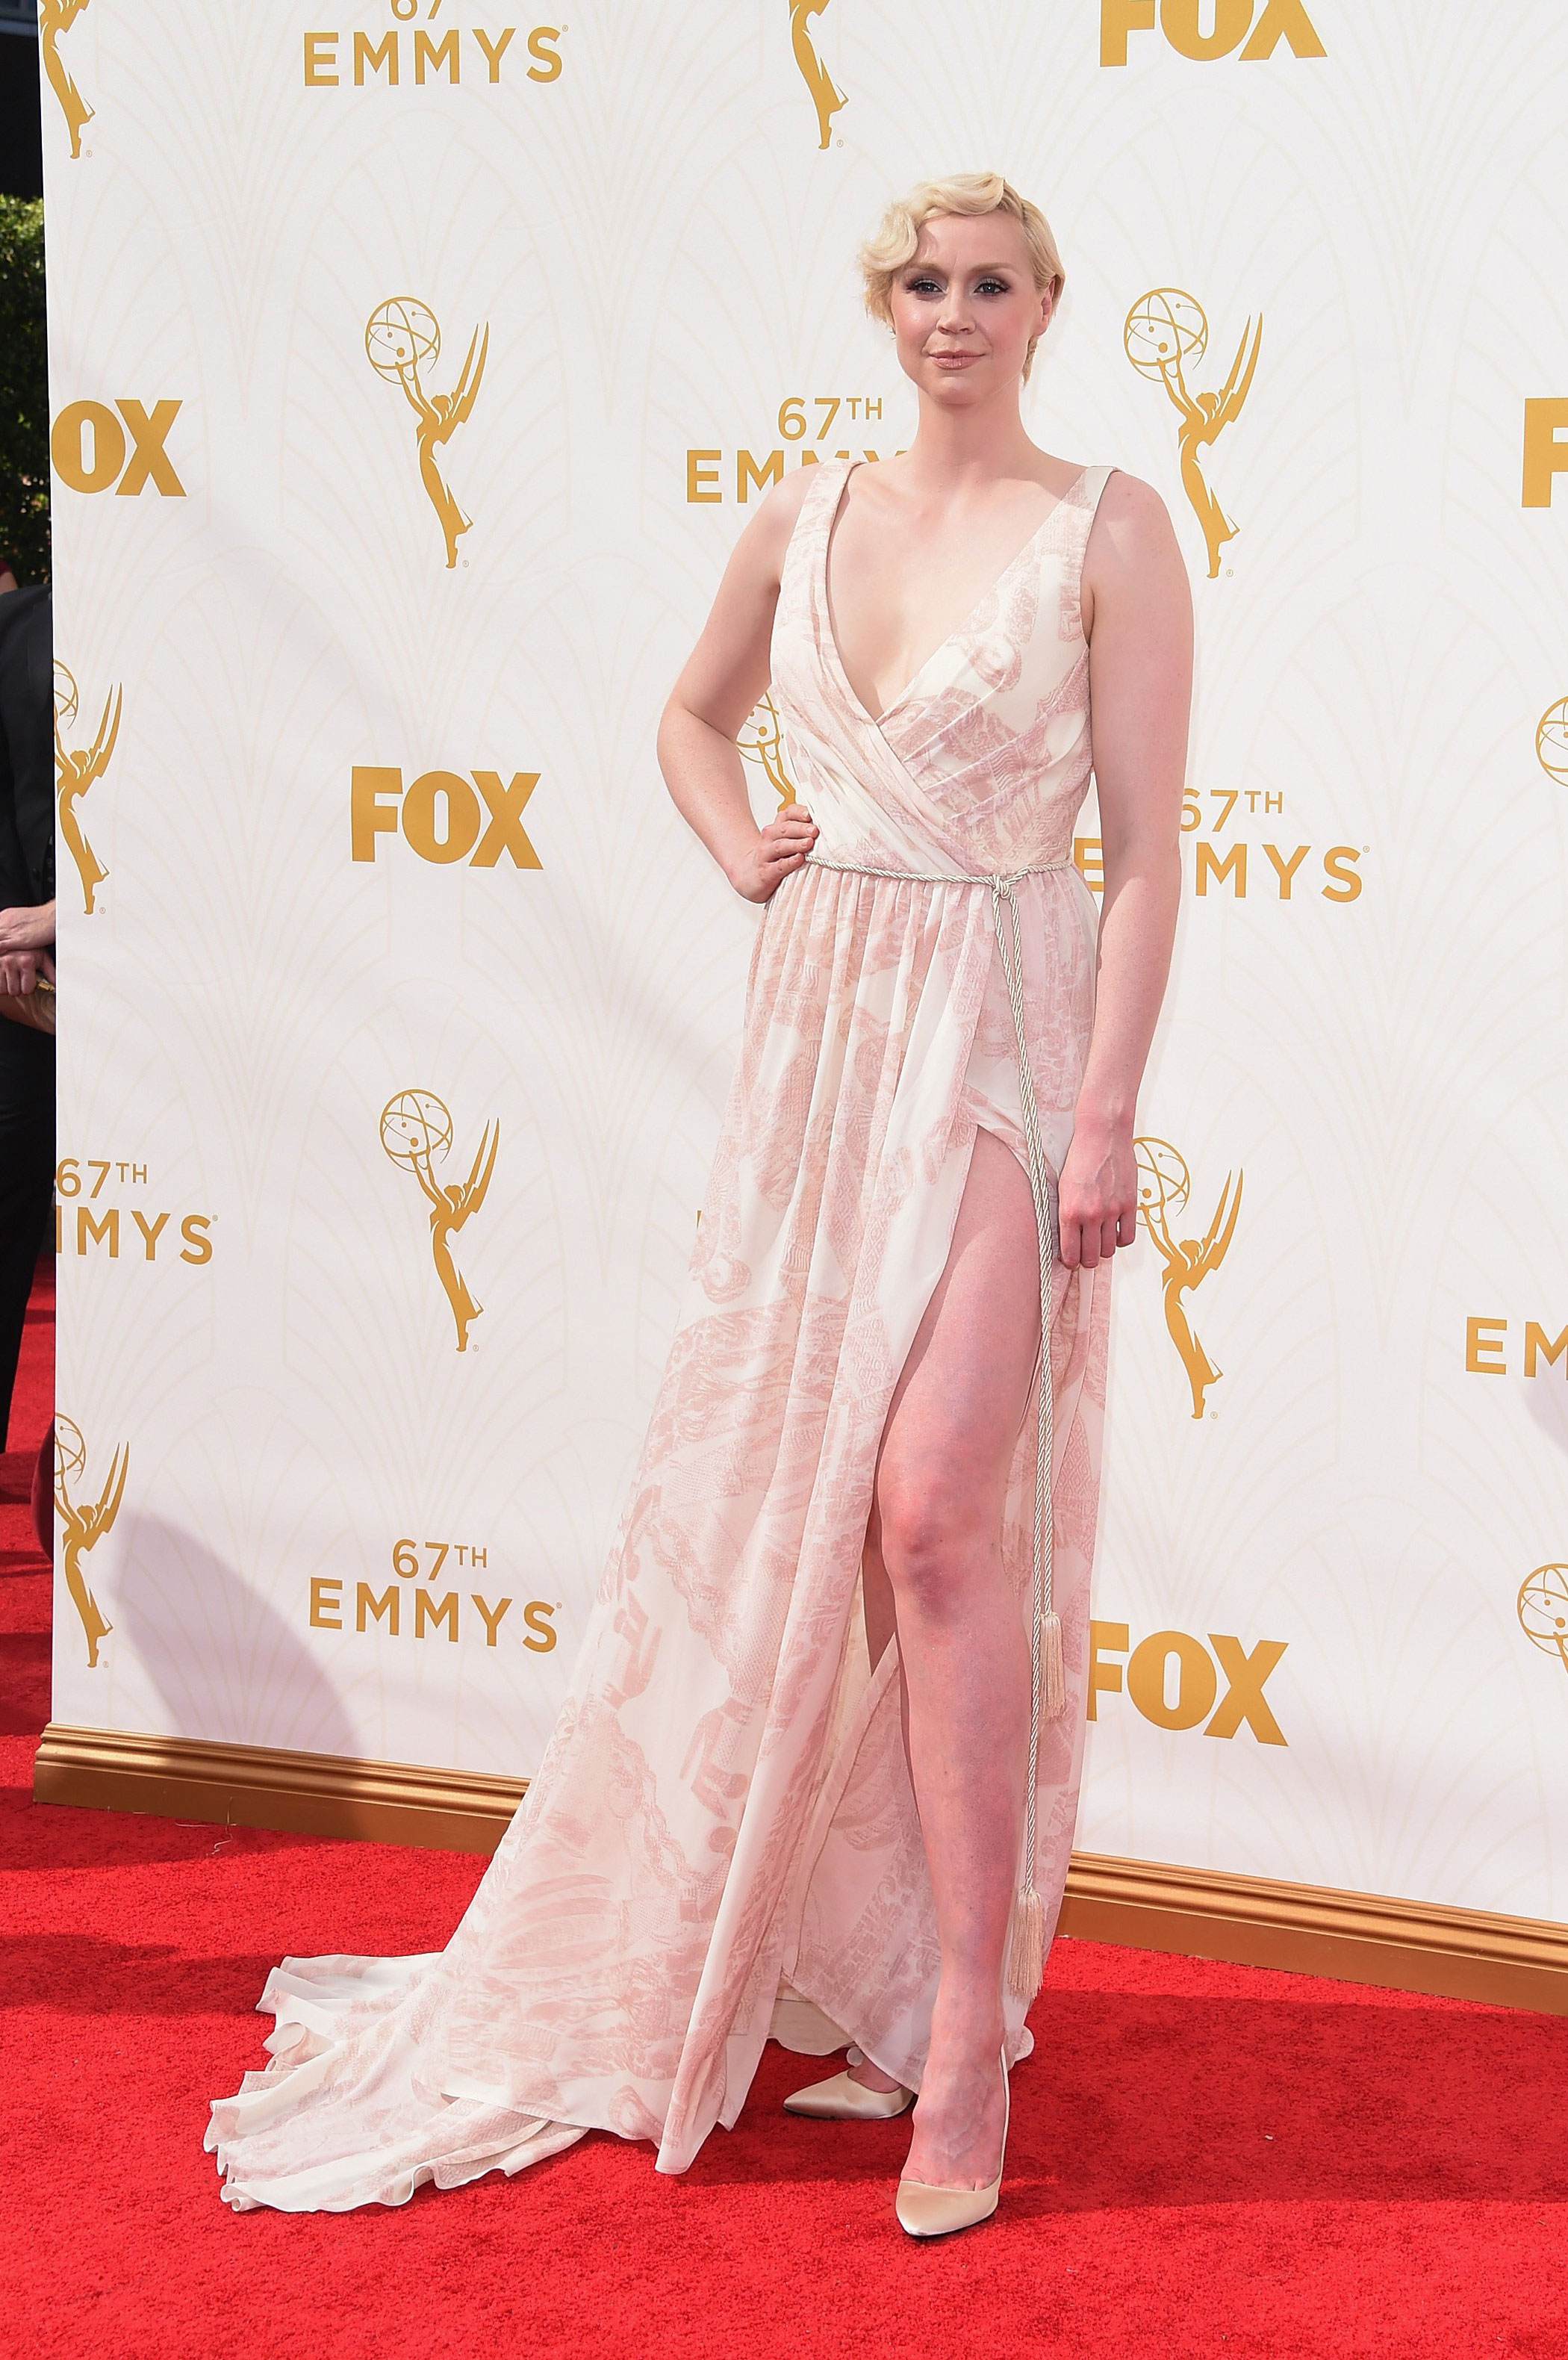 Gwendoline Christie at the 67th Emmy Award on Sept. 20, 2015 in Los Angeles.